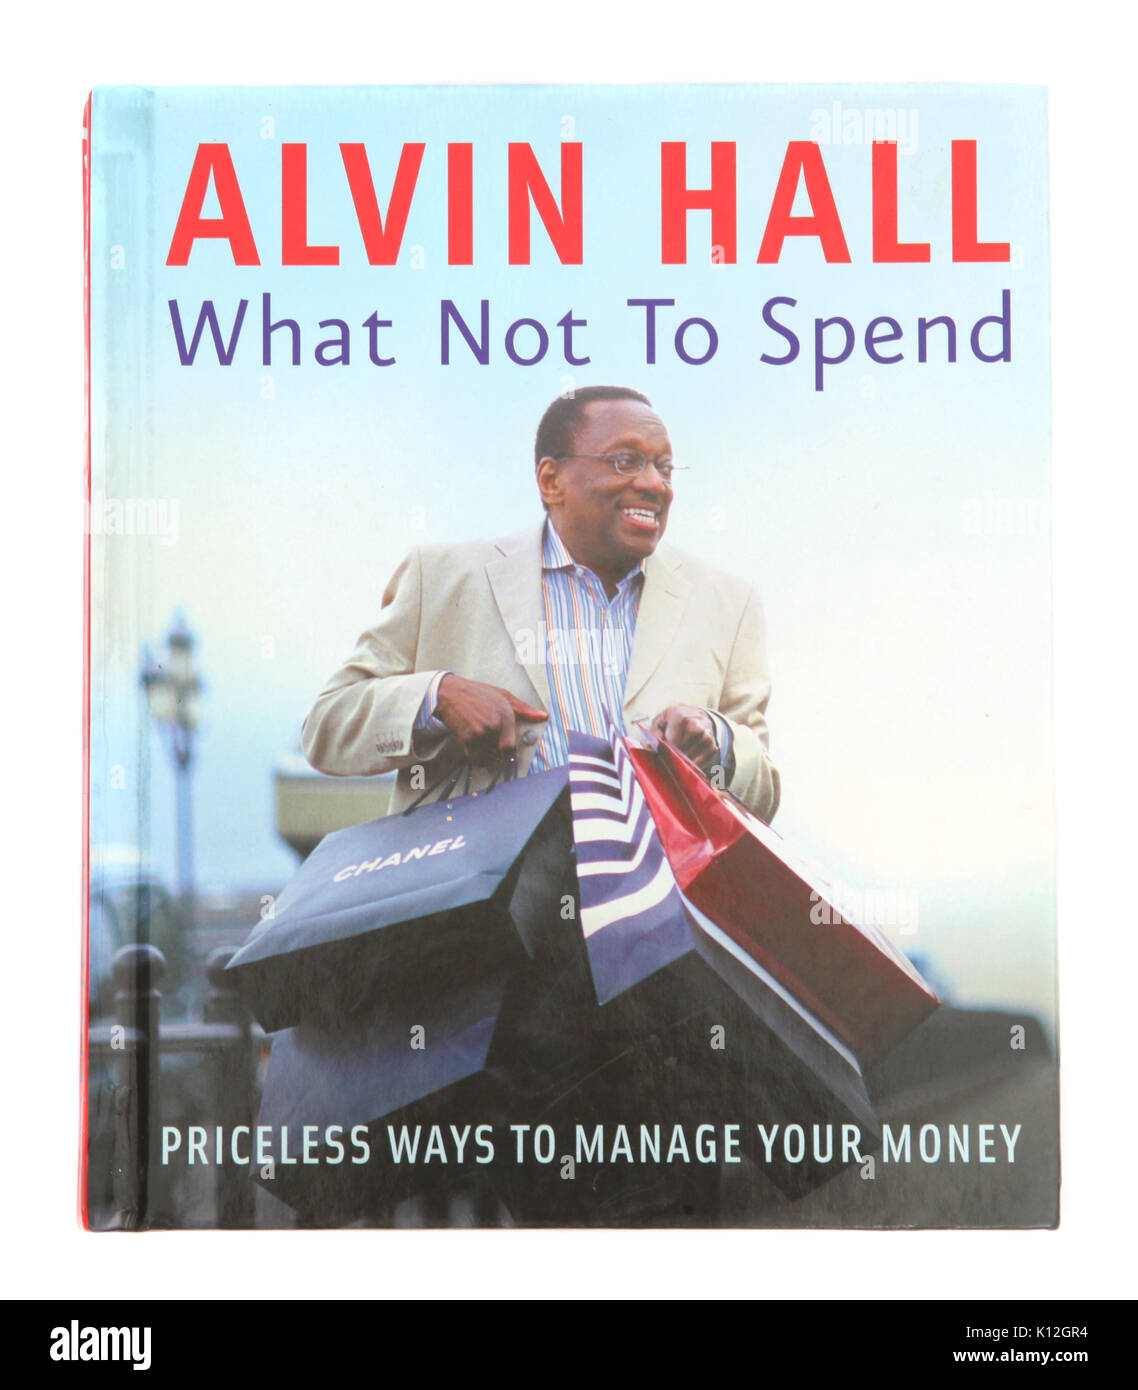 The book What Not to Spend by Alvin Hall - Stock Image